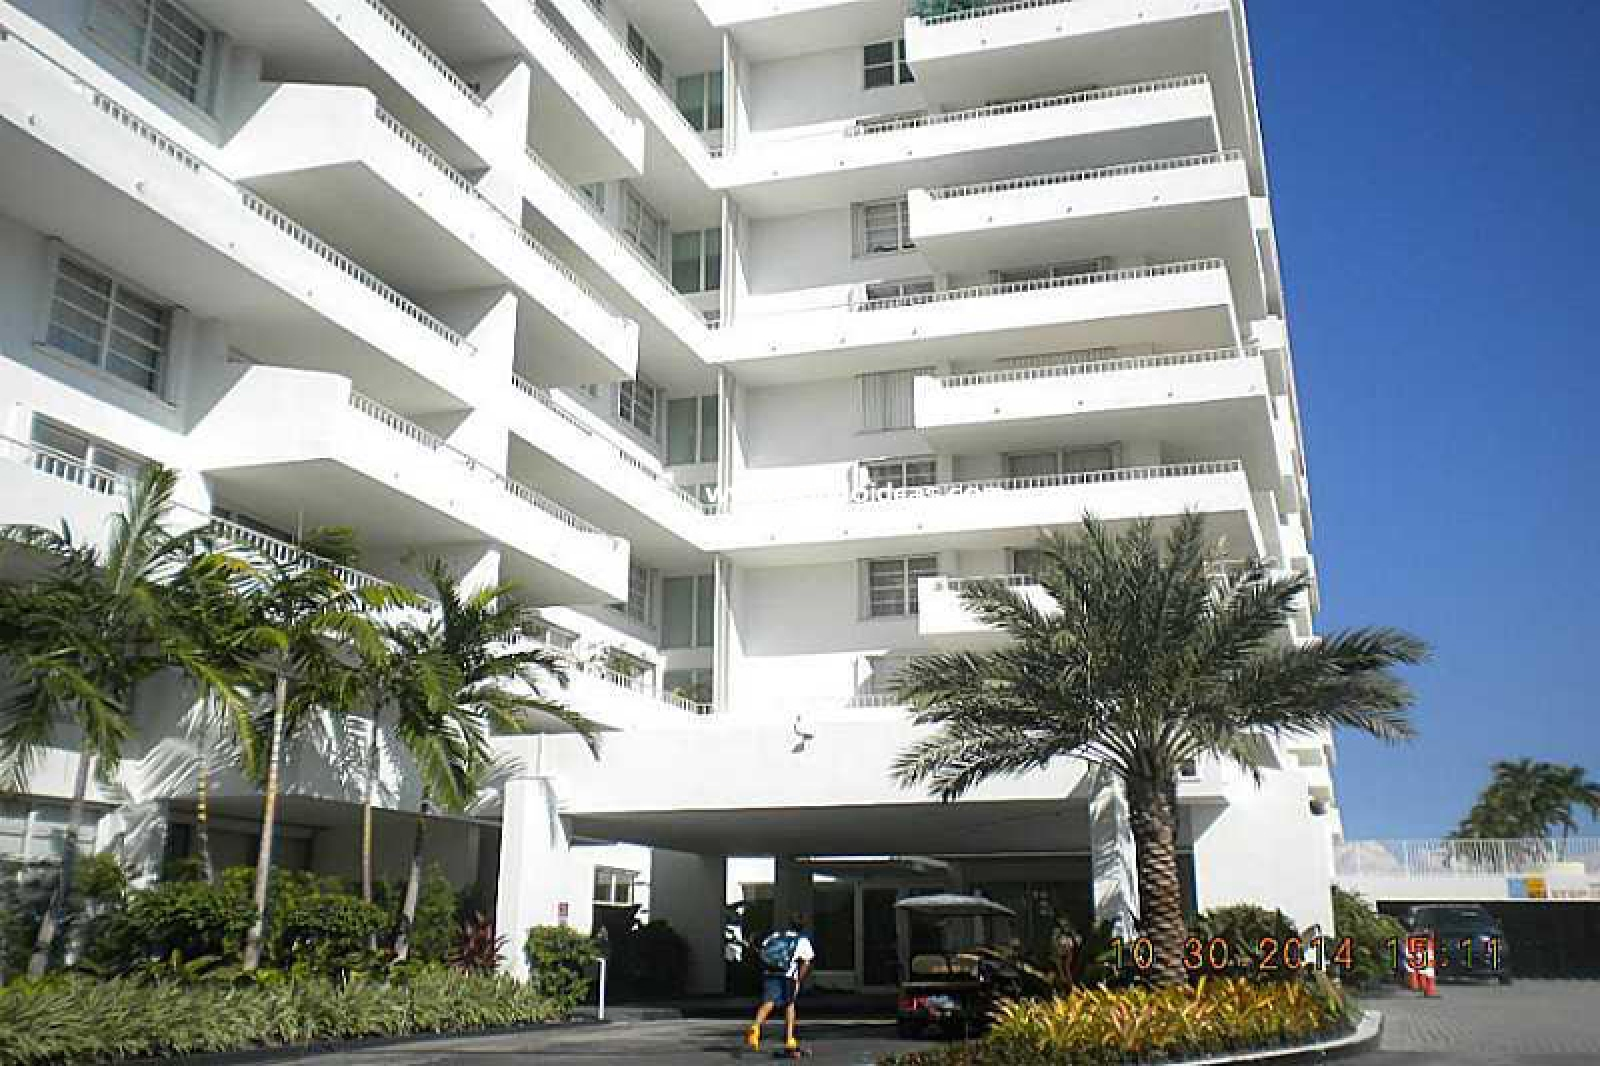 Commodore Club South condo